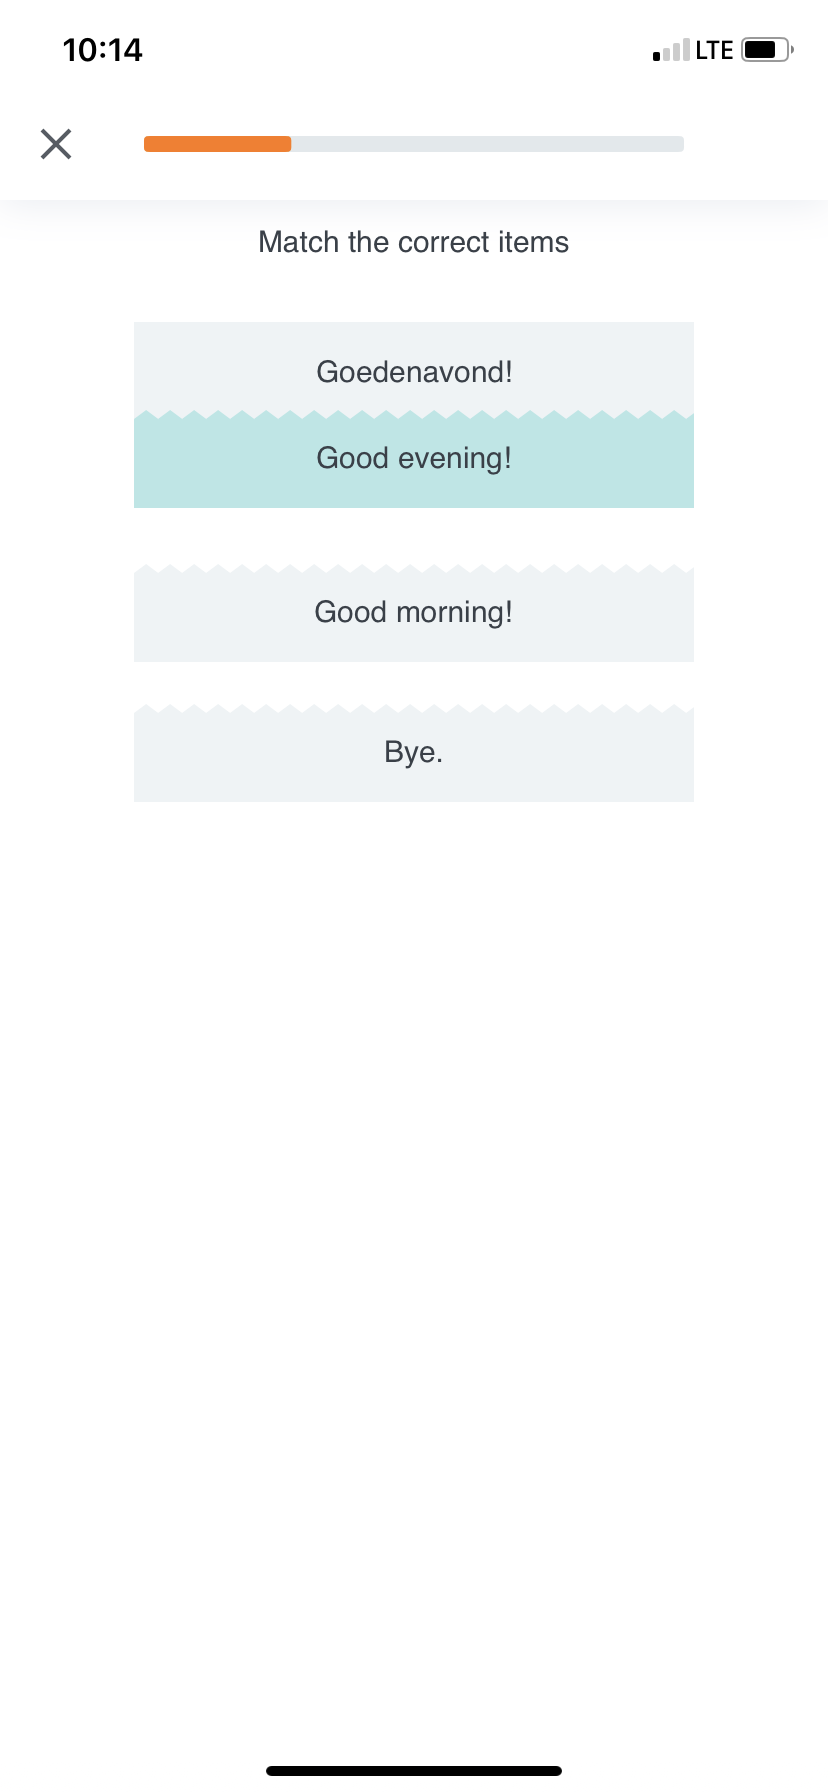 babbel app user onboarding mobile sample language lesson 2